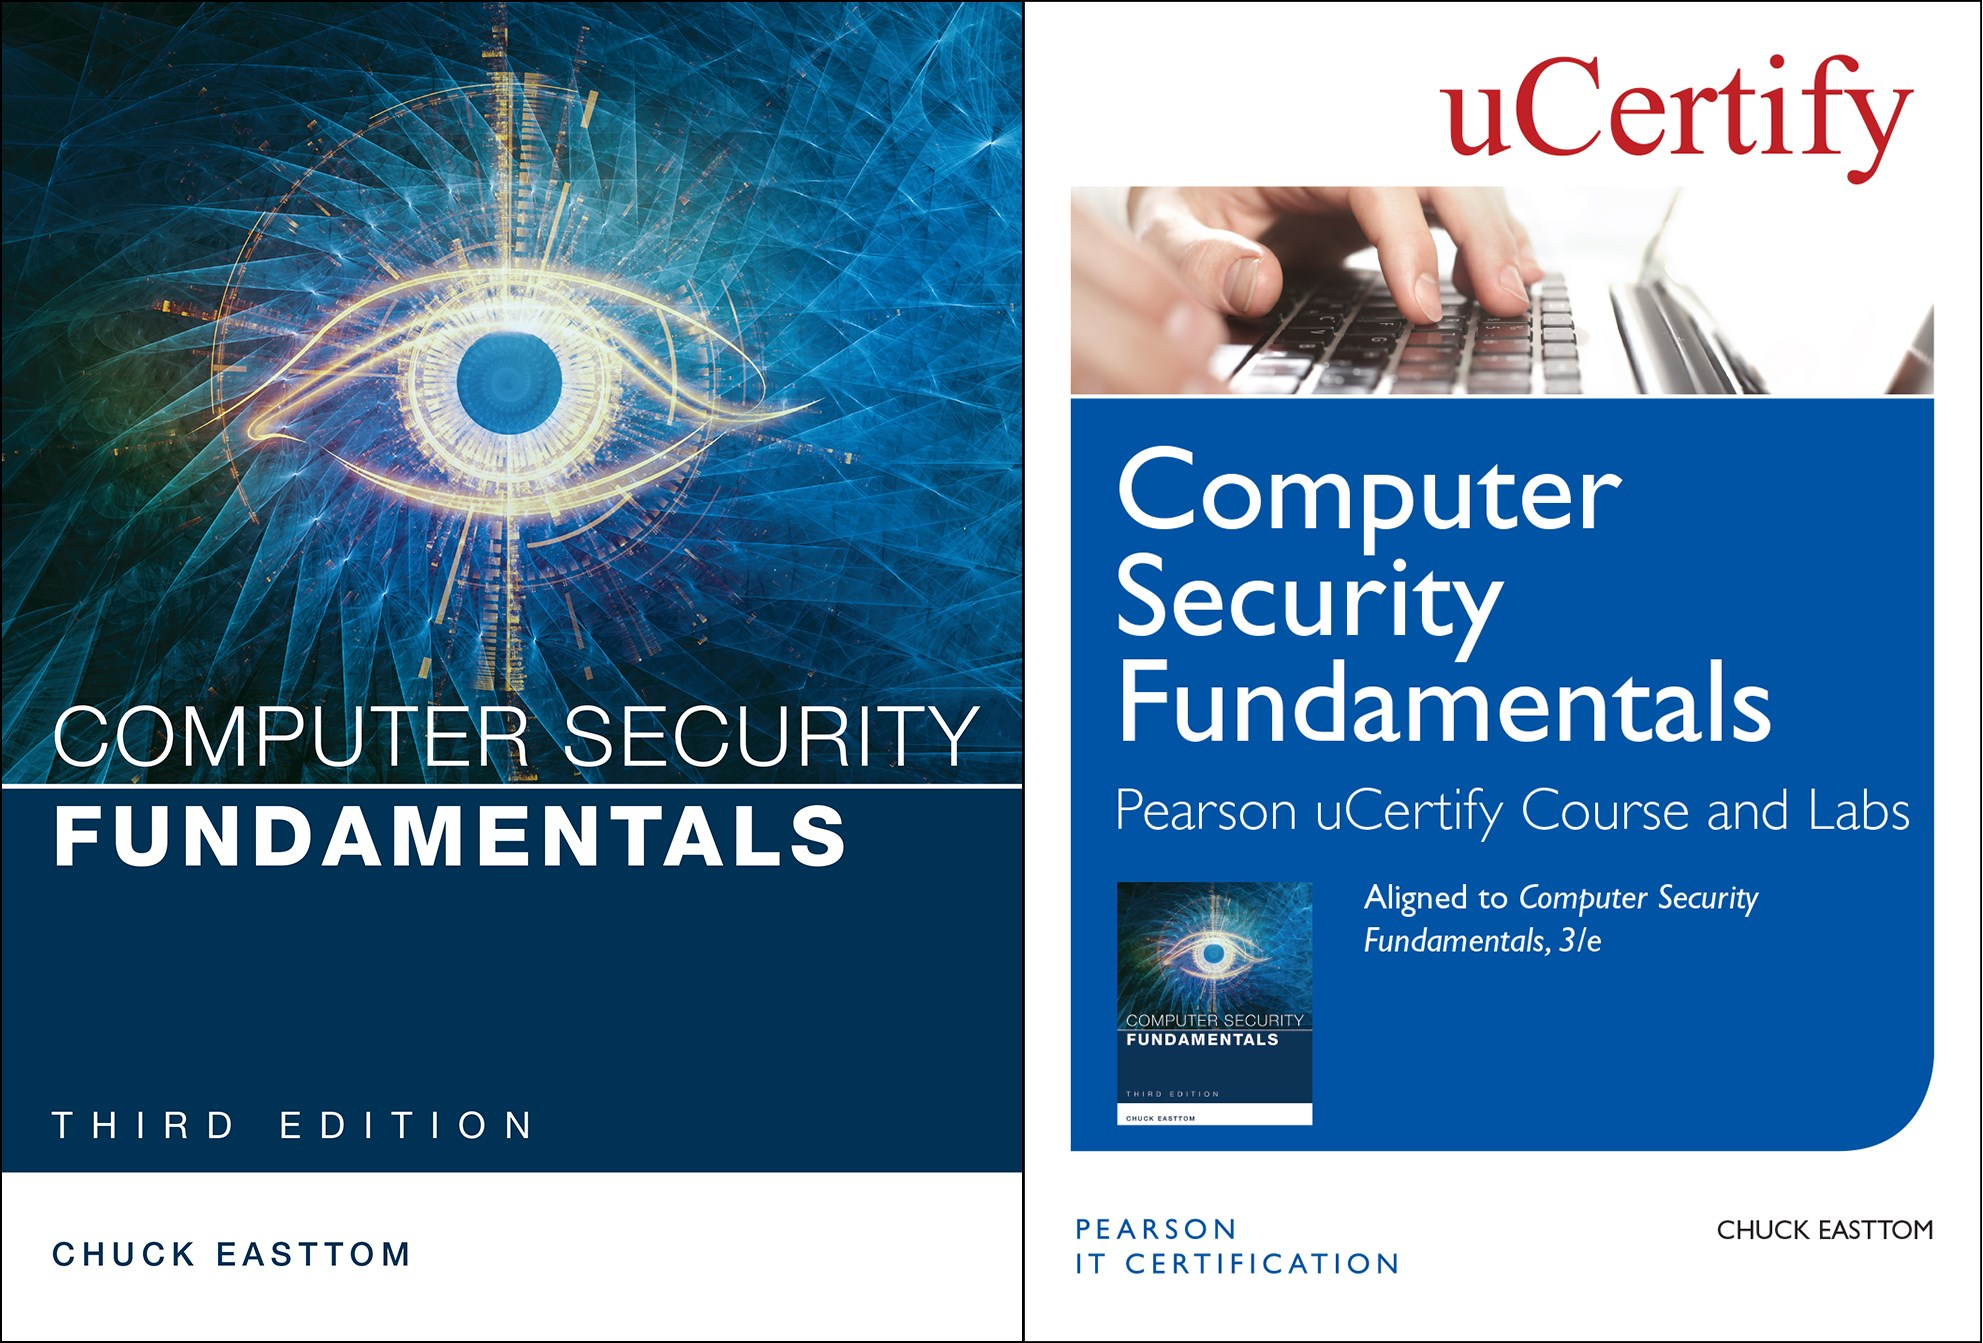 Computer Security Fundamentals Pearson uCertify Course and Labs and Textbook Bundle